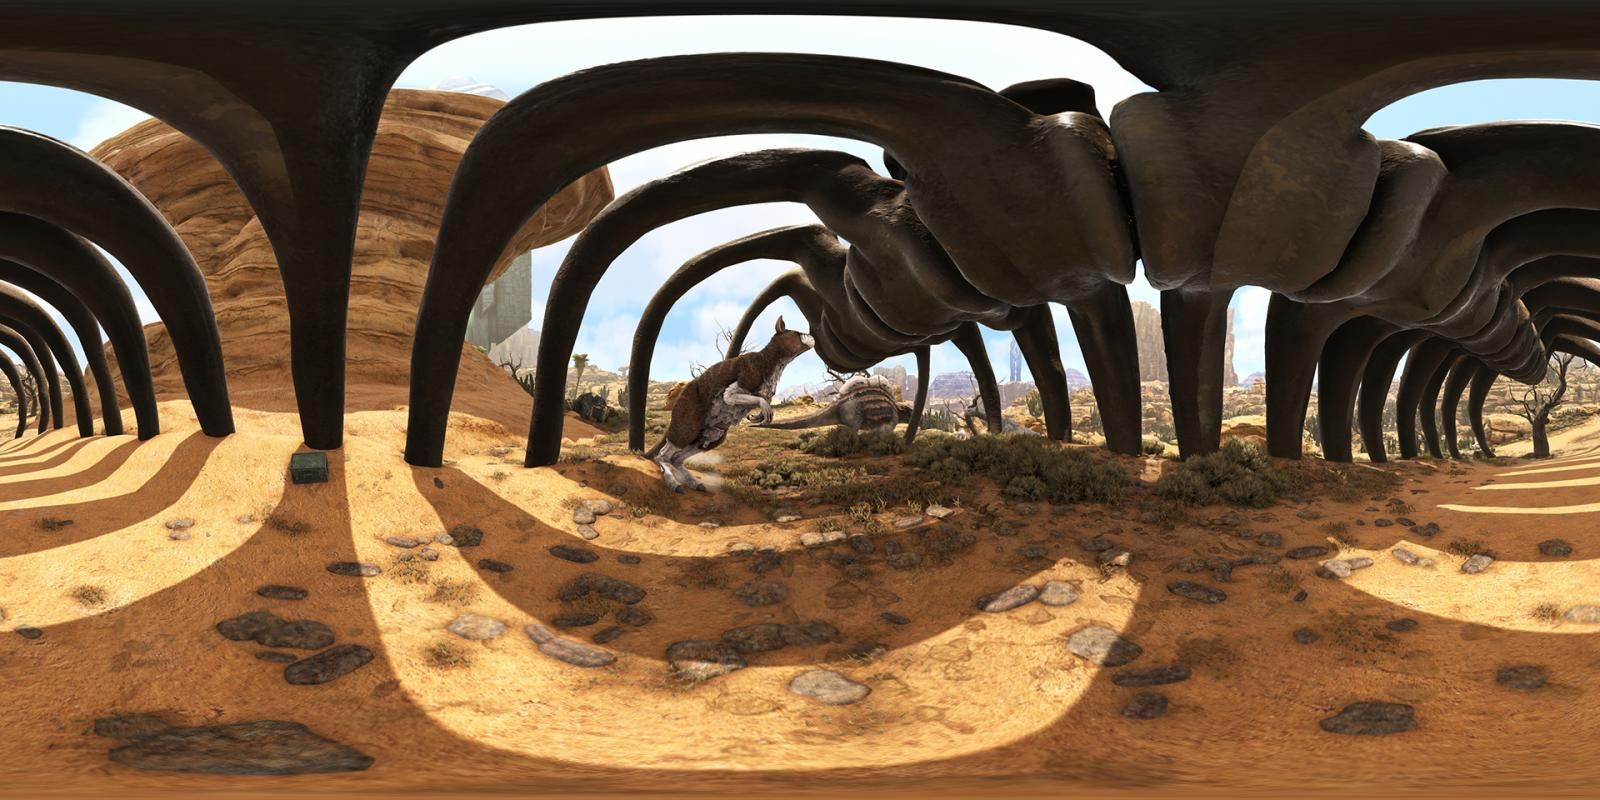 large.58a7b0a68cc79_FataL1ty-LifeandDeath-Panoramic360Stereoscopic3D.jpg